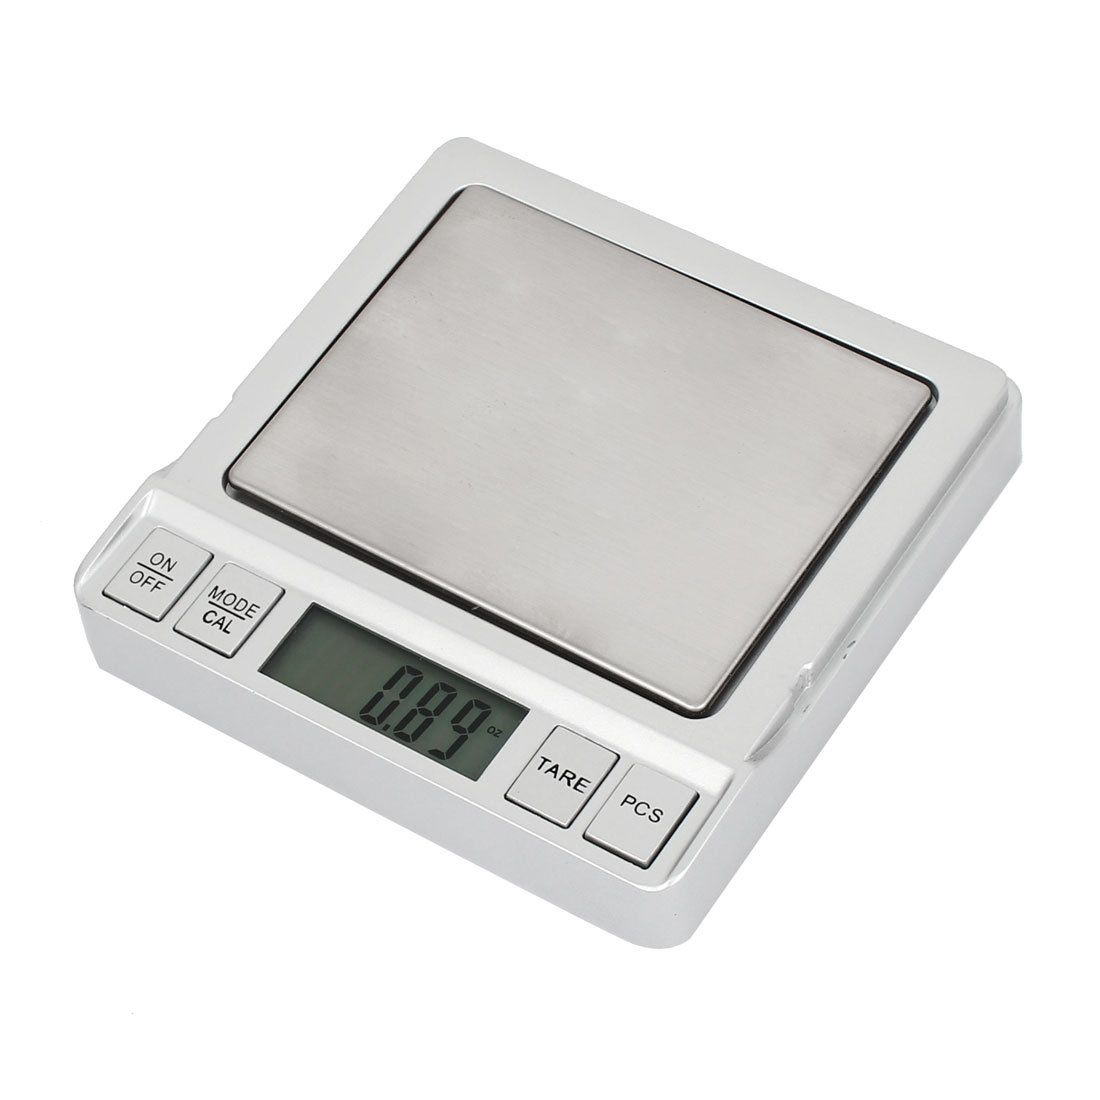 0.1g 500g Jewelry Weight Balance Mini Digital Pocket Scale Silver Tone